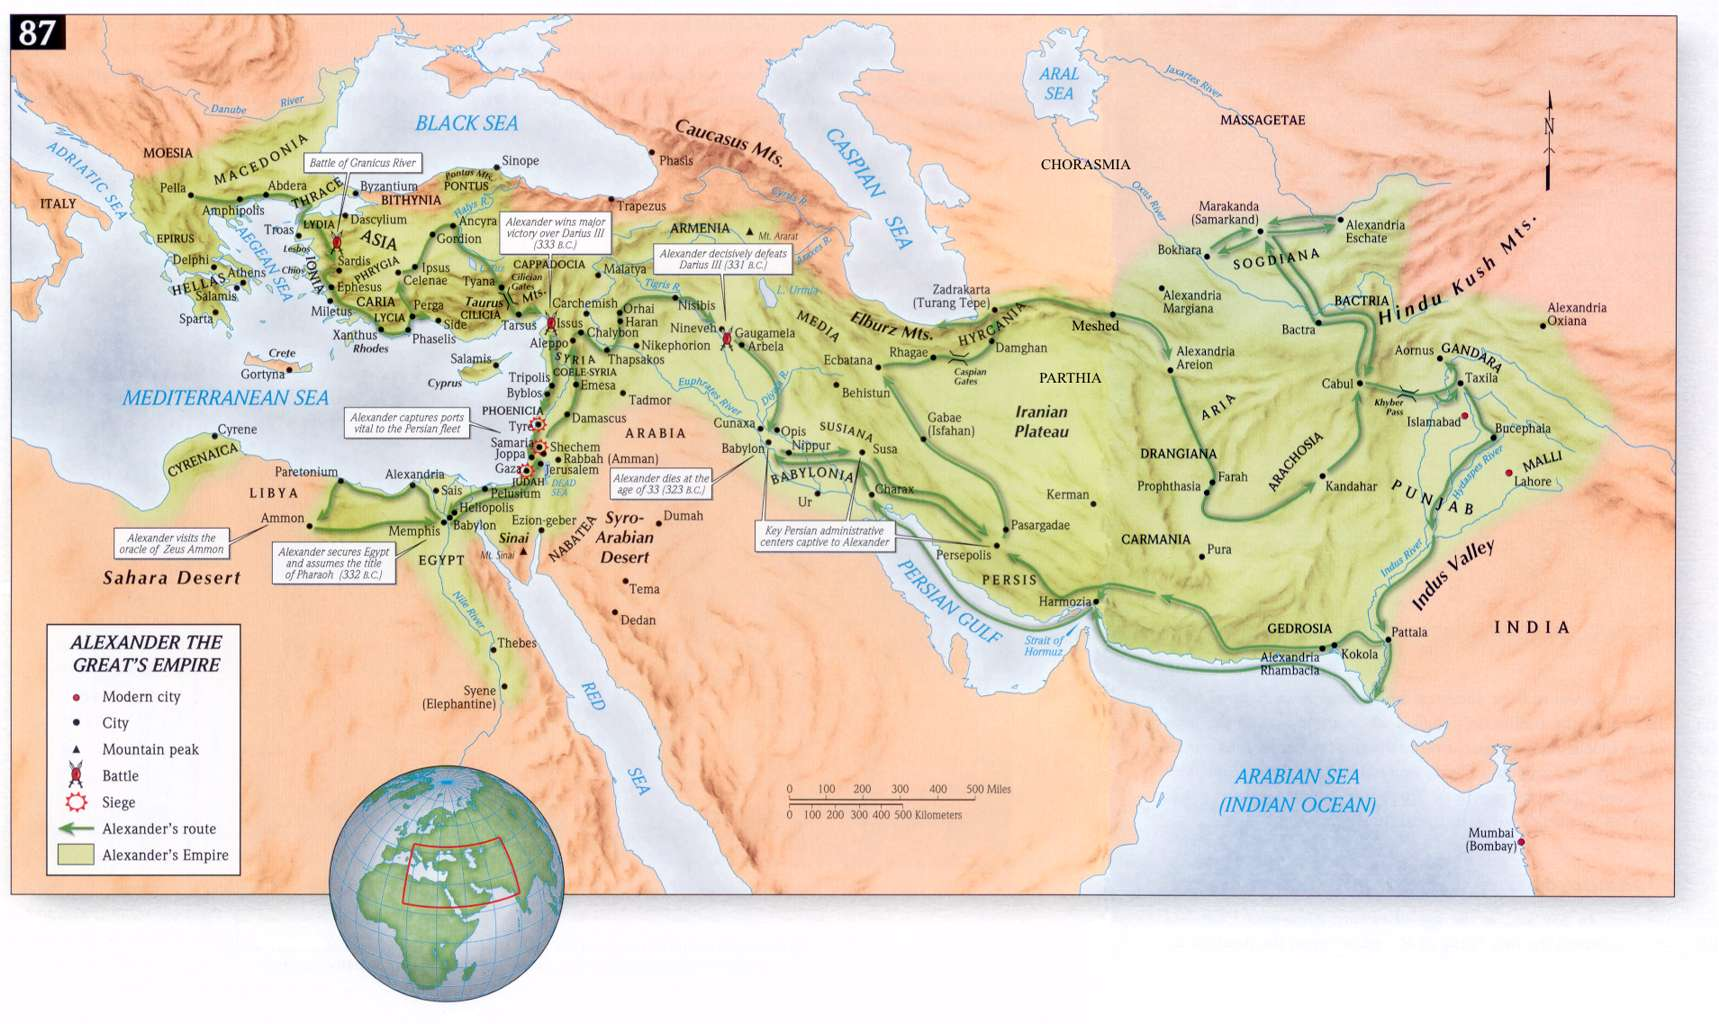 roman empire and modern islamic indian